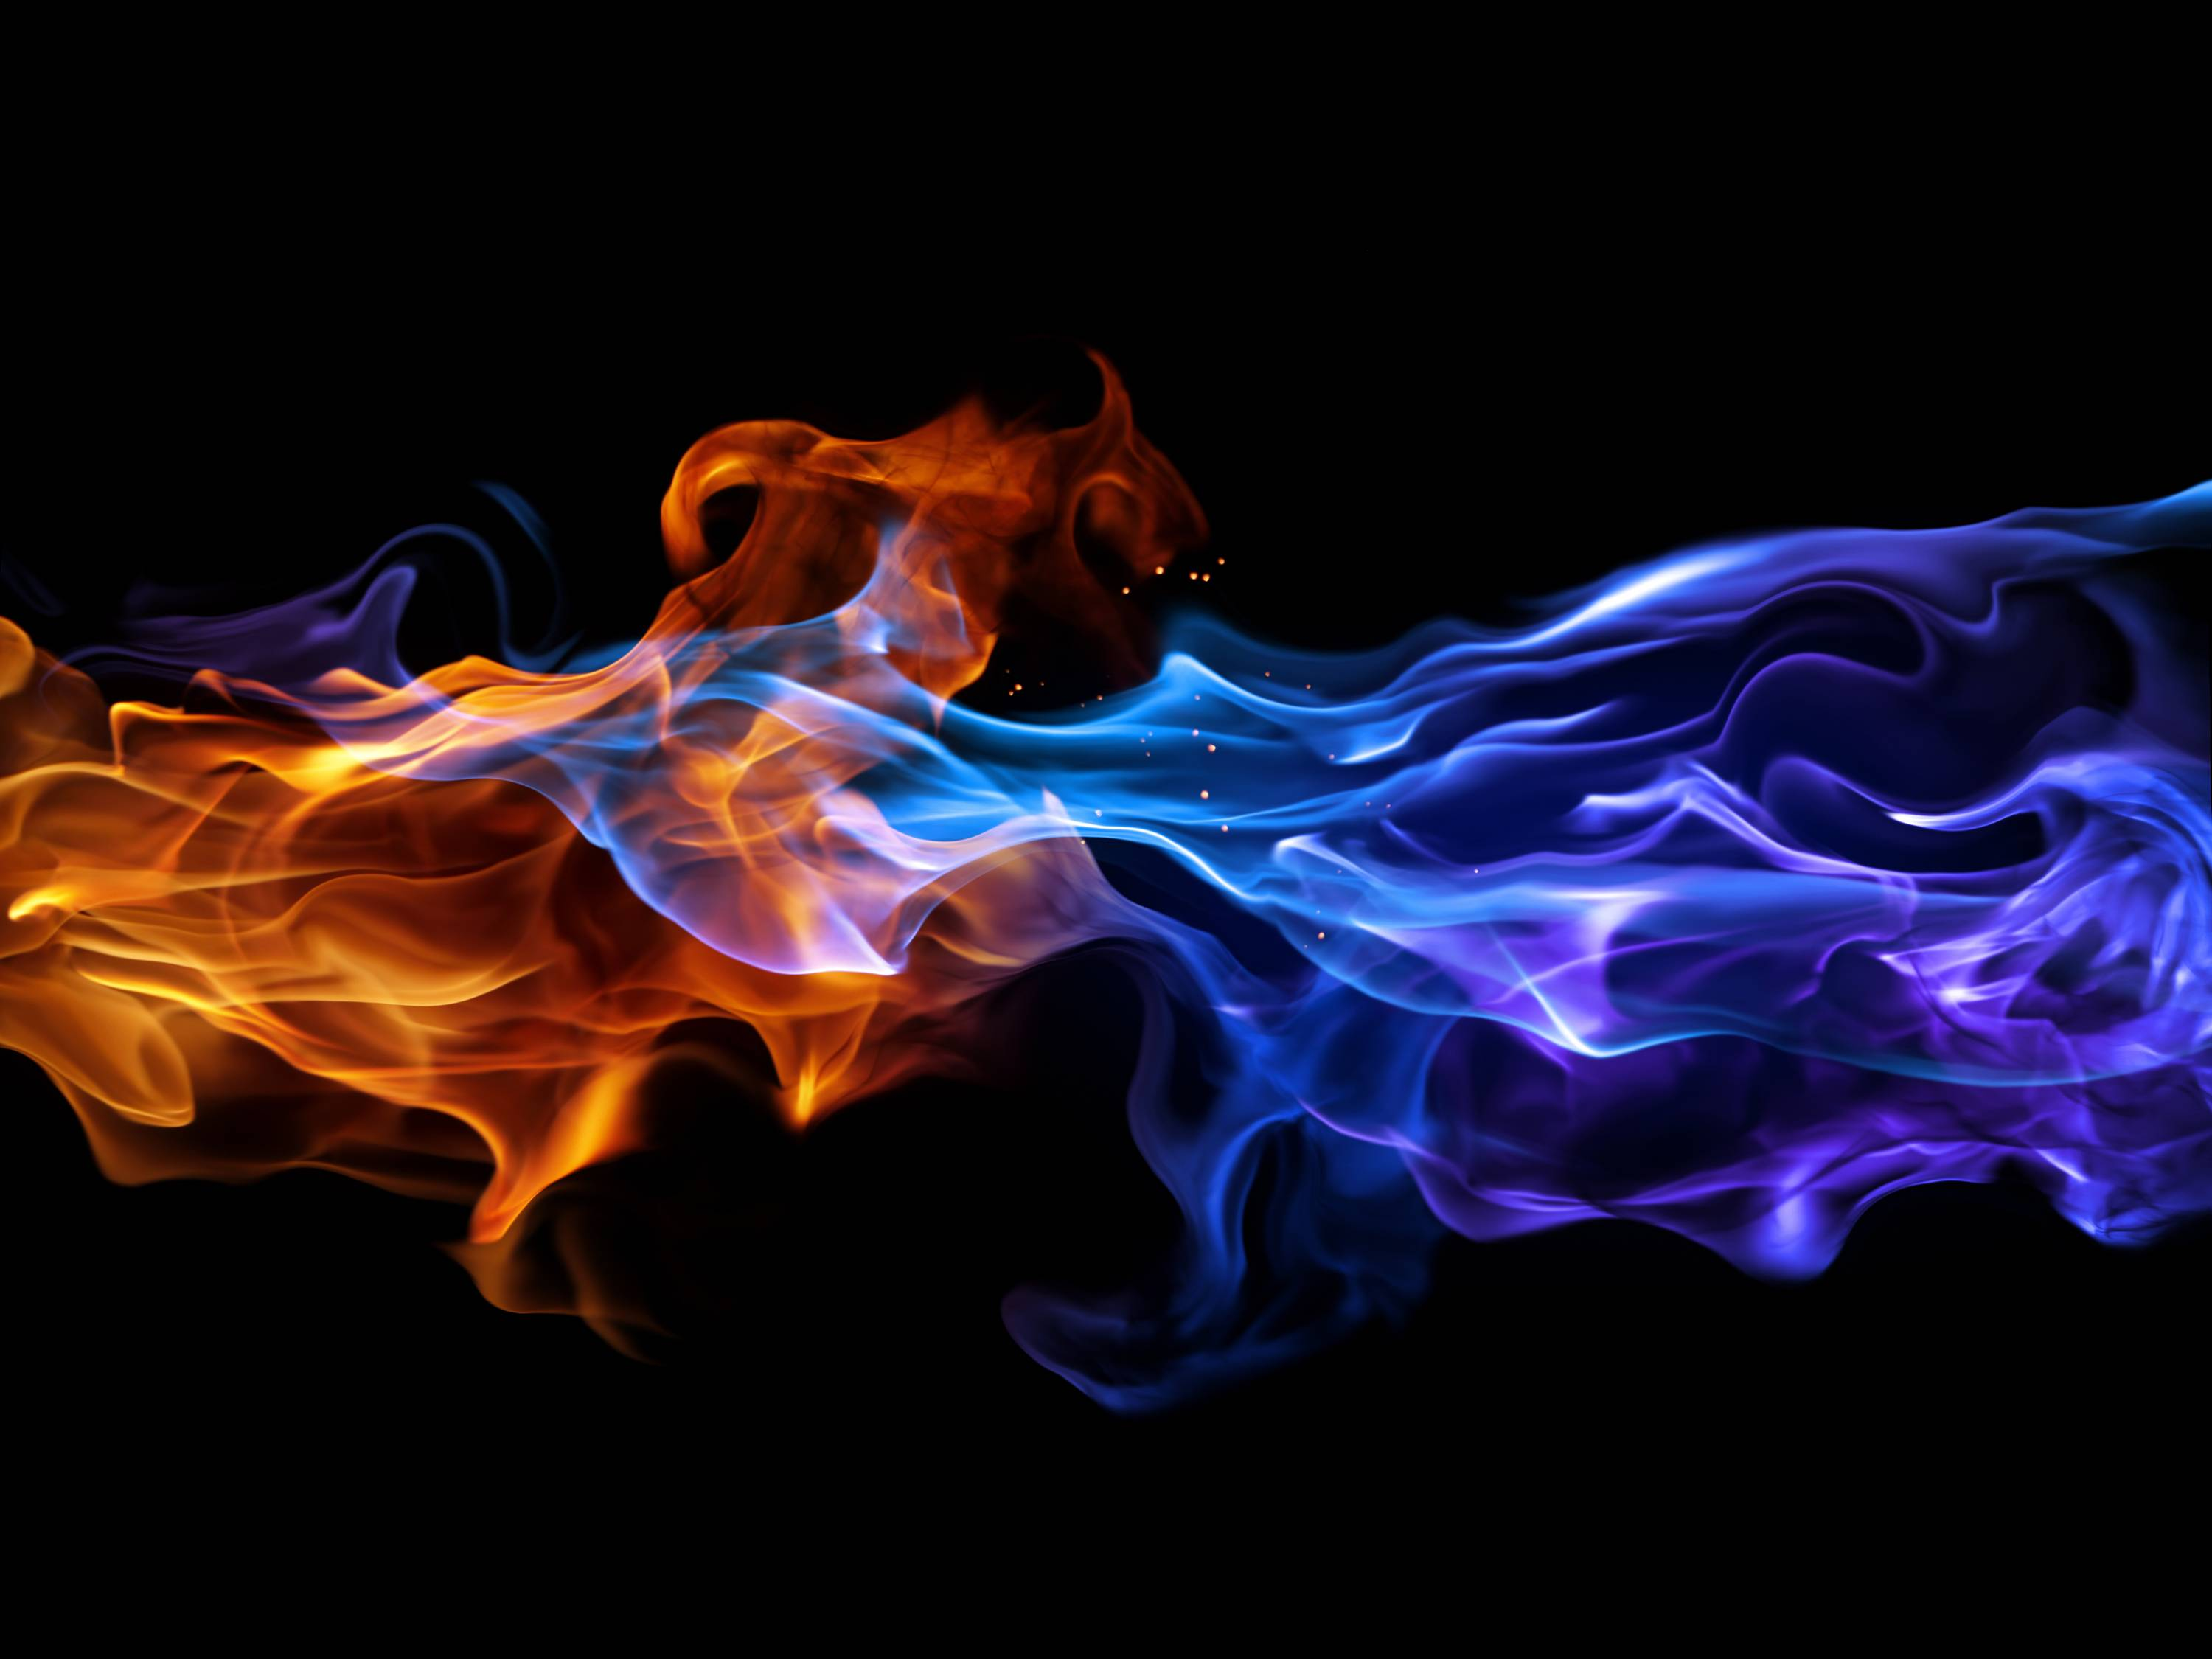 Blue Fire Backgrounds 3000x2250